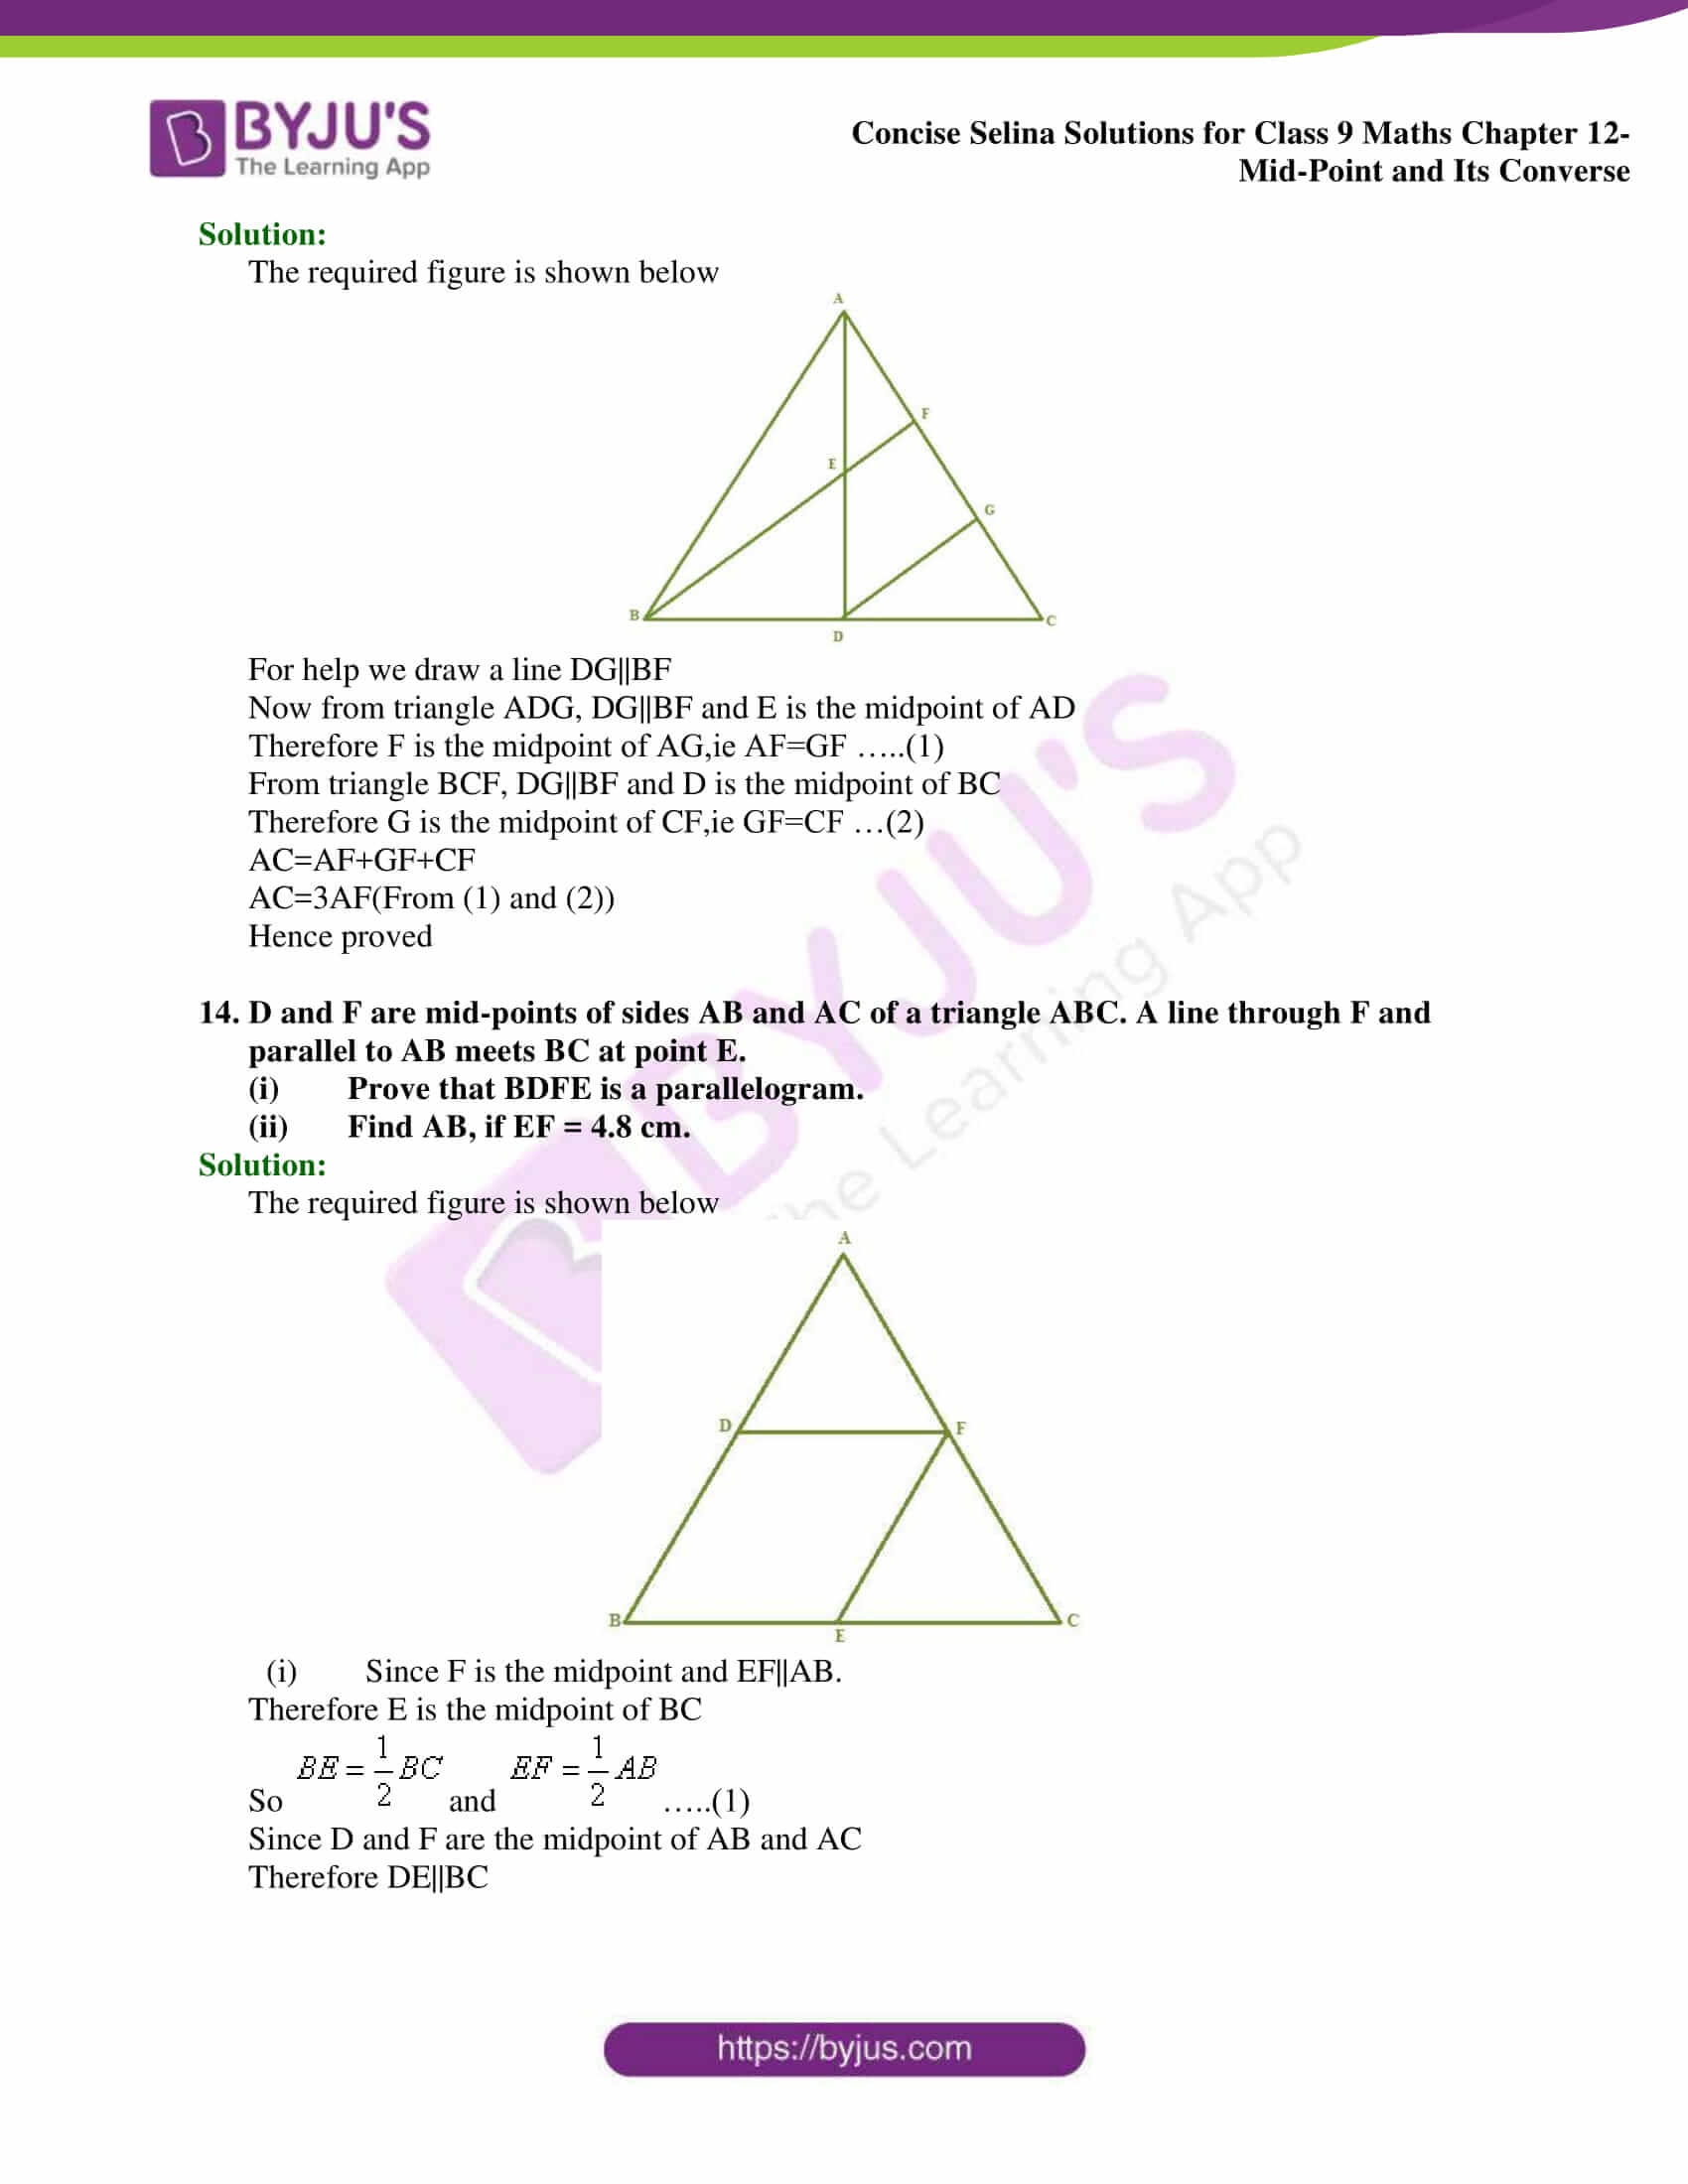 selina Solutions for Class 9 Maths Chapter 12 part 09